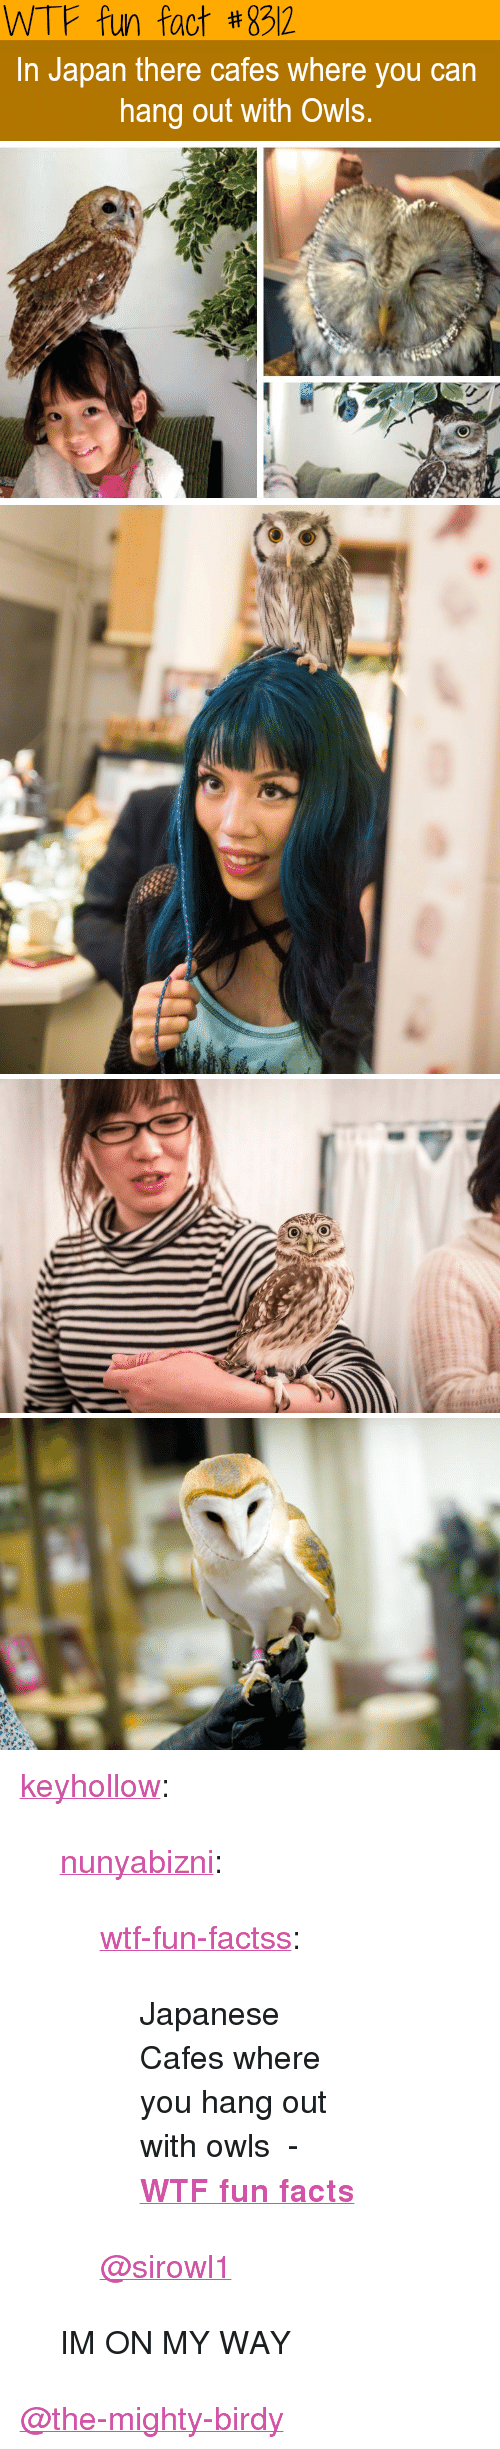 "wtf fun facts: WTF fun fact #892  In Japan there cafes where you can  hang out with Owls. <p><a href=""http://keyhollow.tumblr.com/post/169370681815/nunyabizni-wtf-fun-factss-japanese-cafes"" class=""tumblr_blog"">keyhollow</a>:</p>  <blockquote><p><a href=""https://nunyabizni.tumblr.com/post/169367481212/wtf-fun-factss-japanese-cafes-where-you-hang-out"" class=""tumblr_blog"">nunyabizni</a>:</p> <blockquote> <p><a href=""http://wtffunfact.com/post/169367298097/japanese-cafes-where-you-hang-out-with-owls-wtf"" class=""tumblr_blog"">wtf-fun-factss</a>:</p> <blockquote><p>Japanese Cafes where you hang out with owls  - <b><a href=""http://t.umblr.com/redirect?z=http%3A%2F%2Fwtffunfact.com&amp;t=ZDhmY2M3OTcyYjNiNjUxYmJhM2M3M2U5MzdlZmY3ZDI5MjRjZDEzZix6SkRWellMdw%3D%3D&amp;b=t%3Az9OKwGAR5vFReO8UIkz88w&amp;p=http%3A%2F%2Fwtffunfact.com%2Fpost%2F169240304262%2Fonly-half-of-your-brain-sleeps-when-you-sleep-in&amp;m=1"">WTF fun facts</a></b><br/></p></blockquote> <p style=""""><a class=""tumblelog"" href=""https://tmblr.co/mI7eUZvpvxiX5go8iH4JPtw"">@sirowl1</a><br/></p> </blockquote>  <p>IM ON MY WAY</p></blockquote>  <a class=""tumblelog"" href=""https://tmblr.co/mqJeMrC1zUWwi8Nf-Fyv_4g"">@the-mighty-birdy</a>"